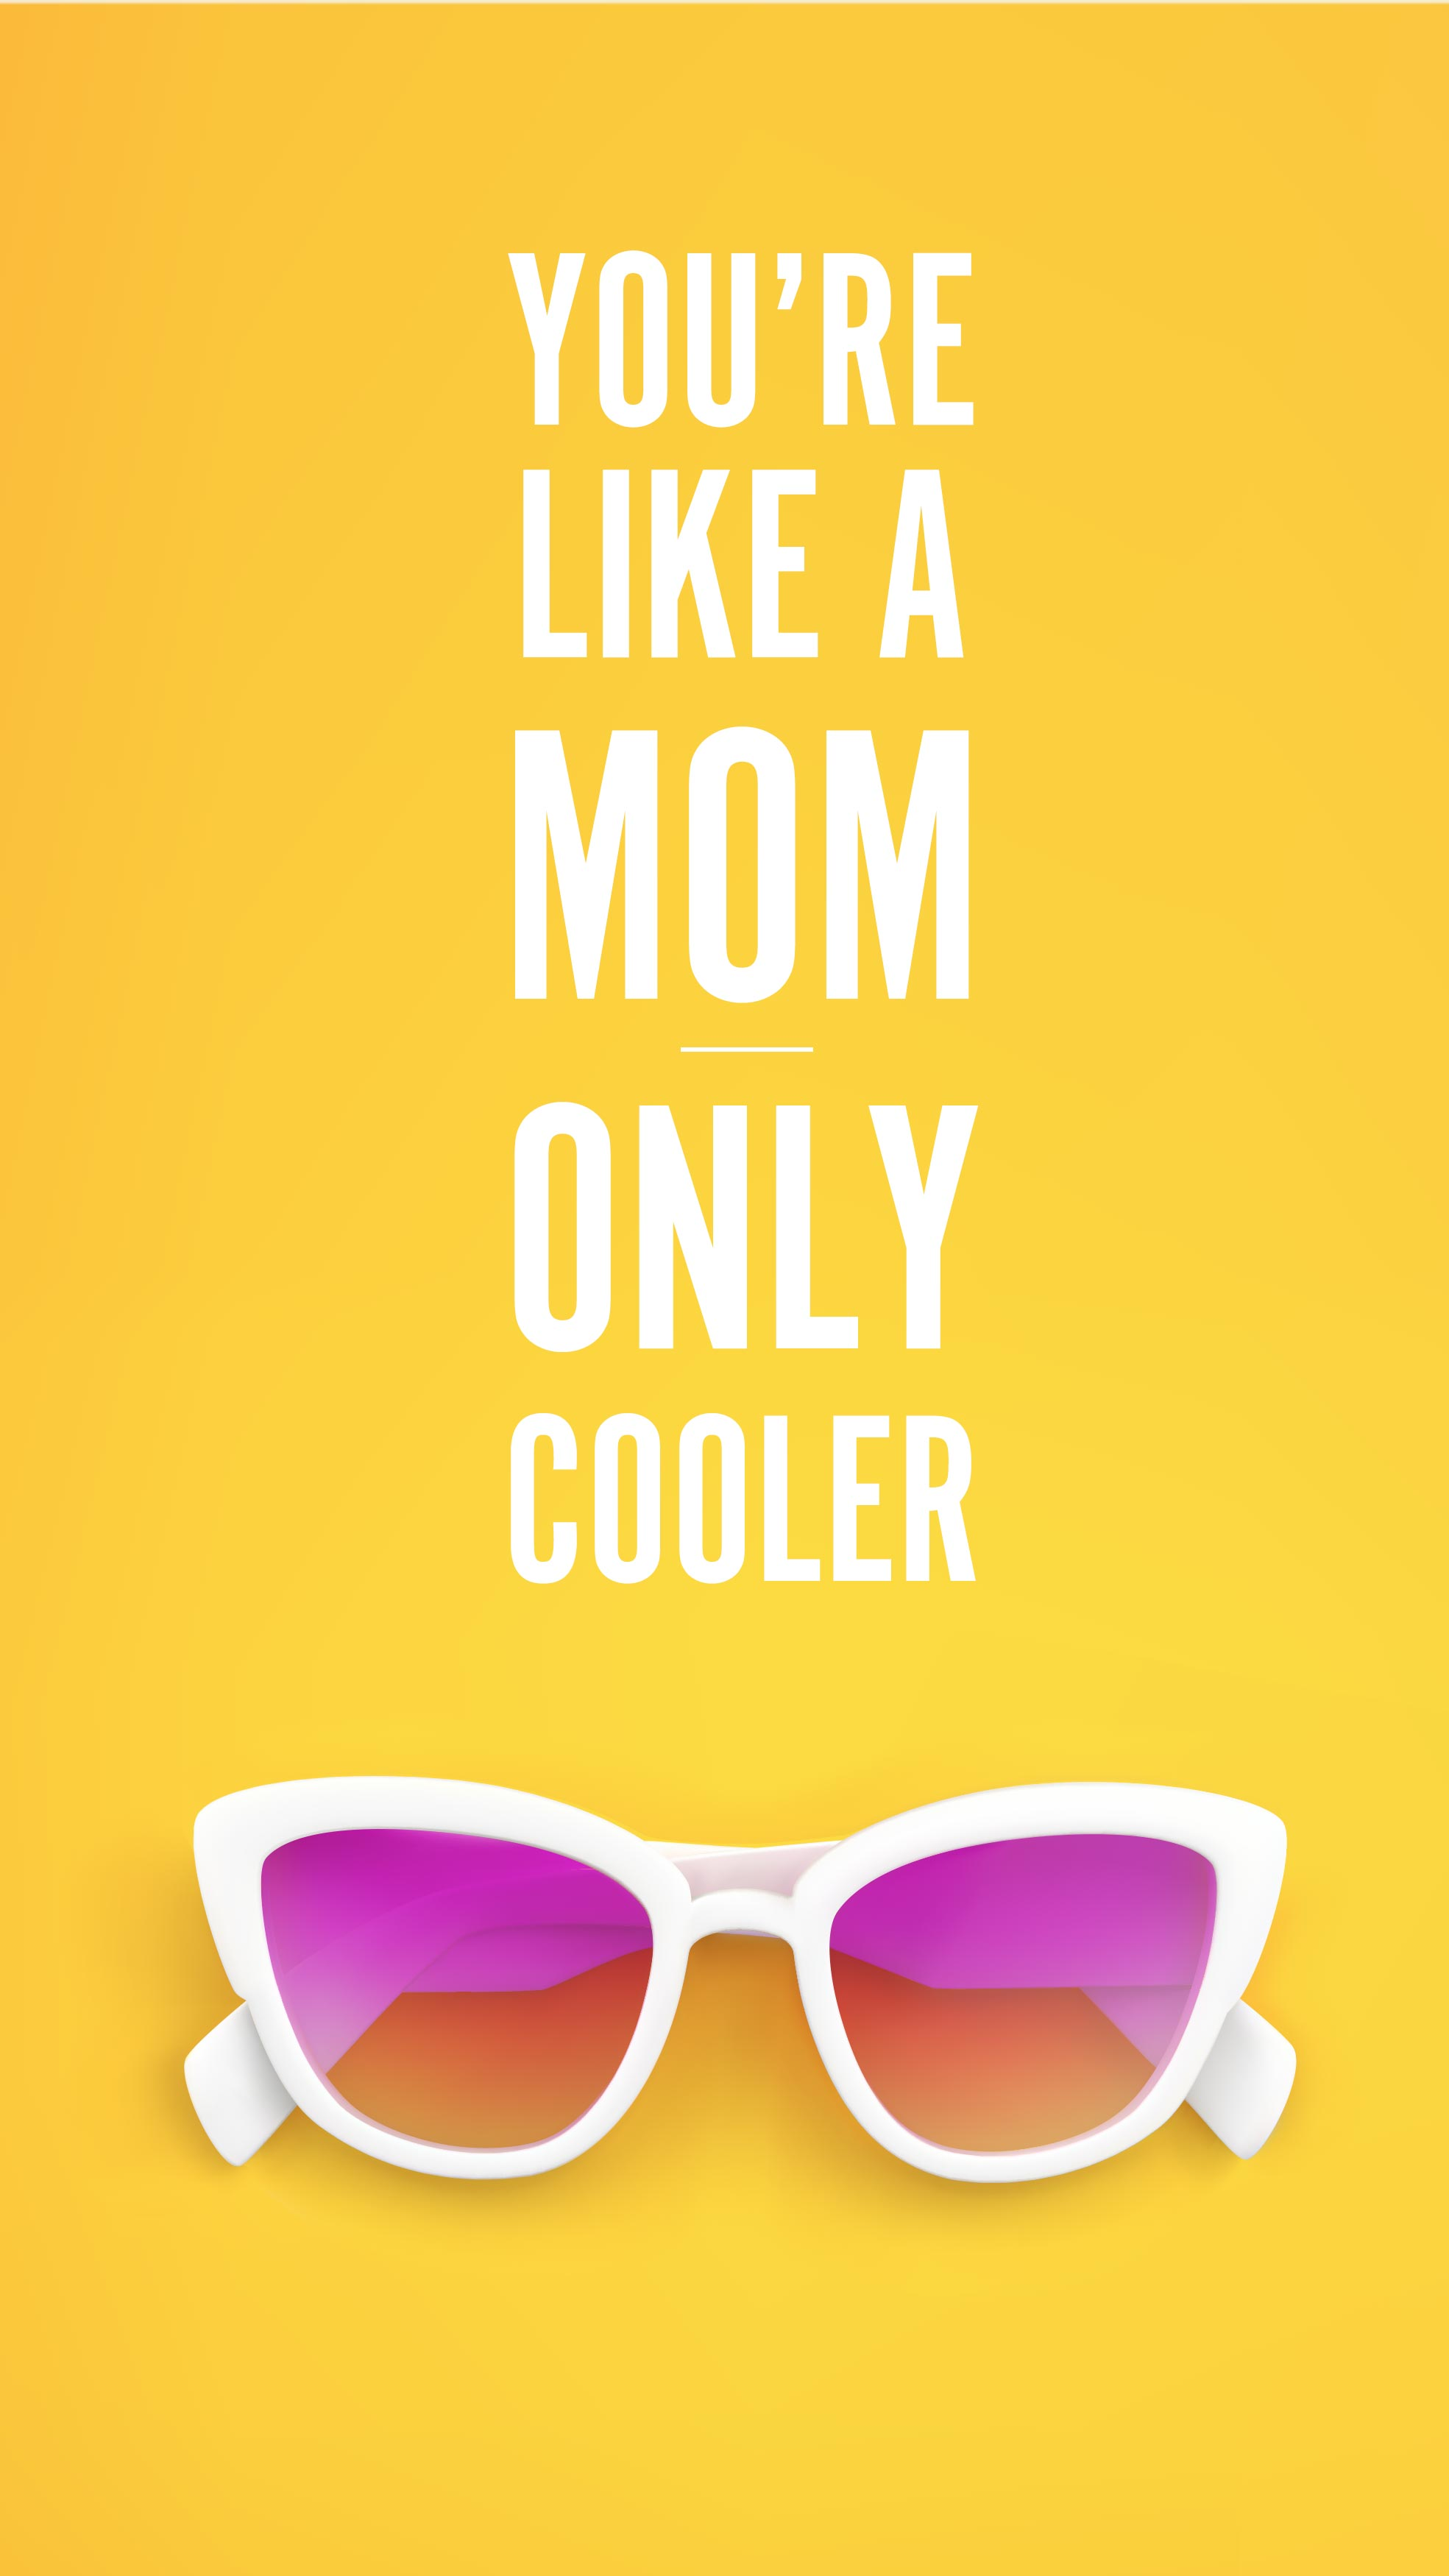 Only Cooler